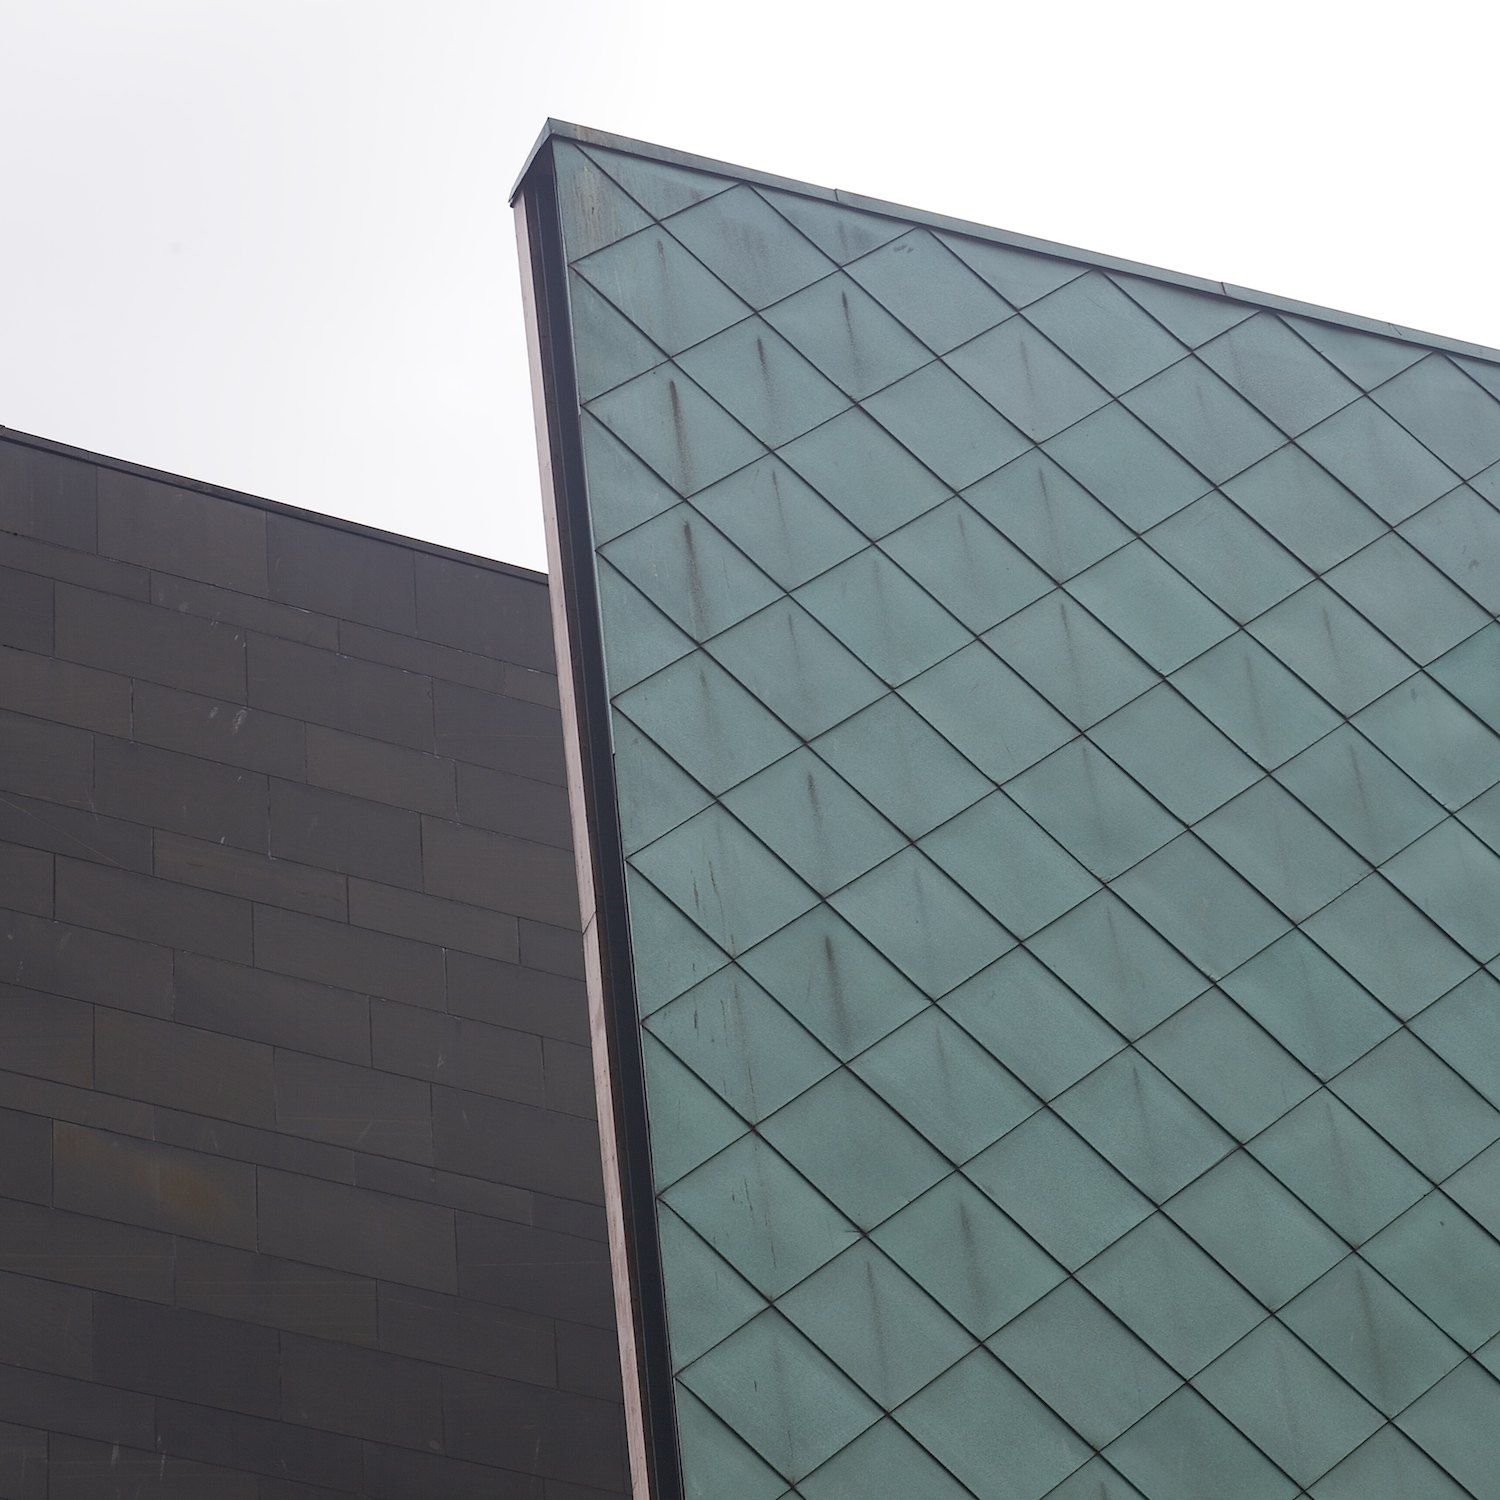 Christopher-Swan-glasgow-abstract 62014-03-08.jpg